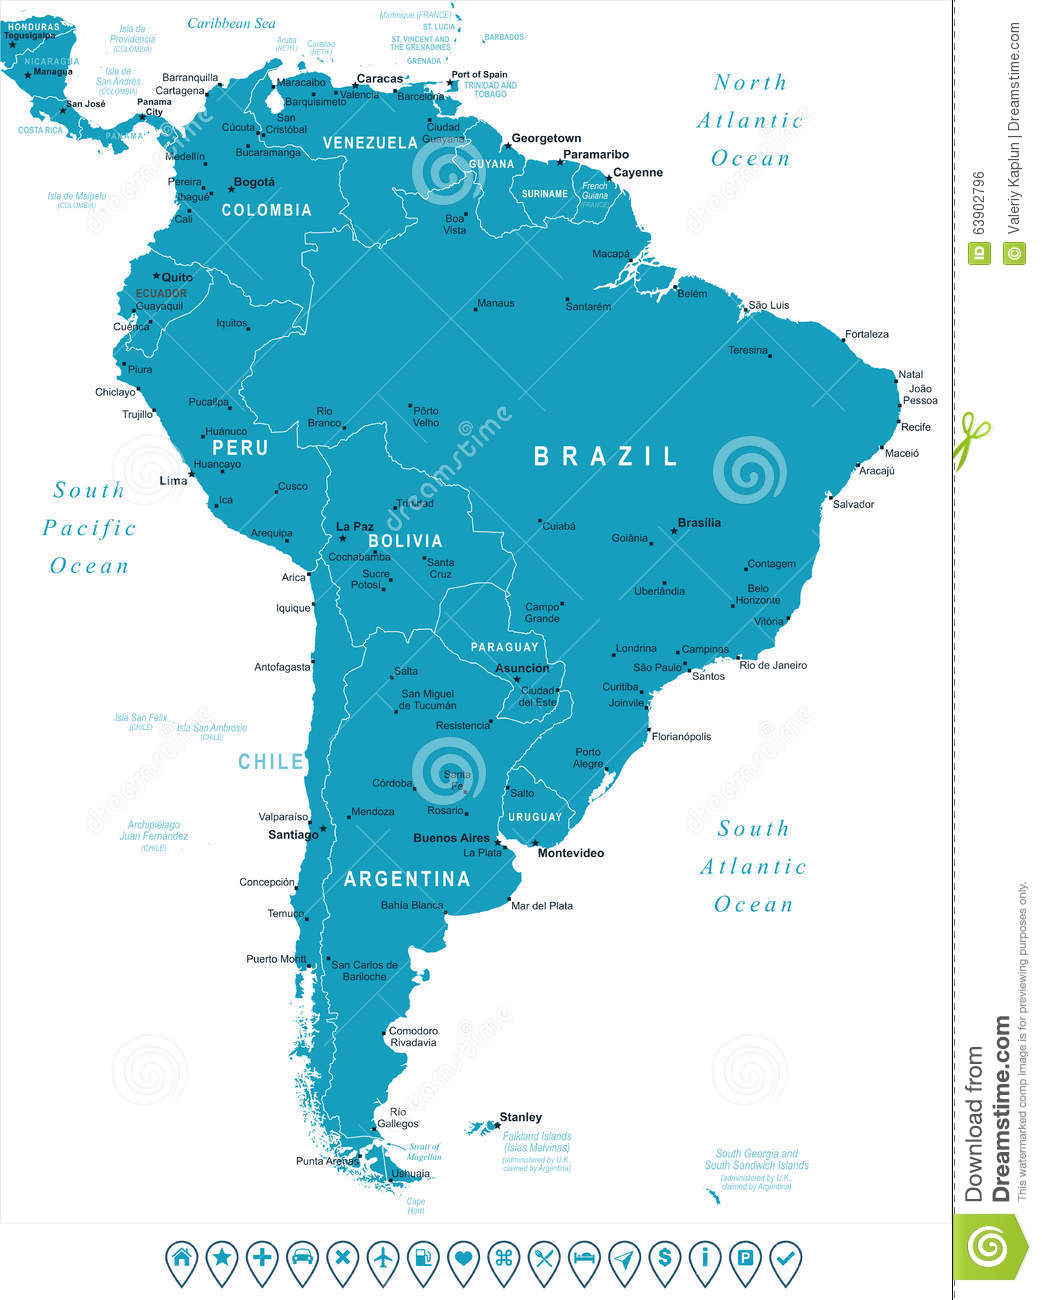 South America Map No Names.South America Map And Navigation Labels Illustration Stock